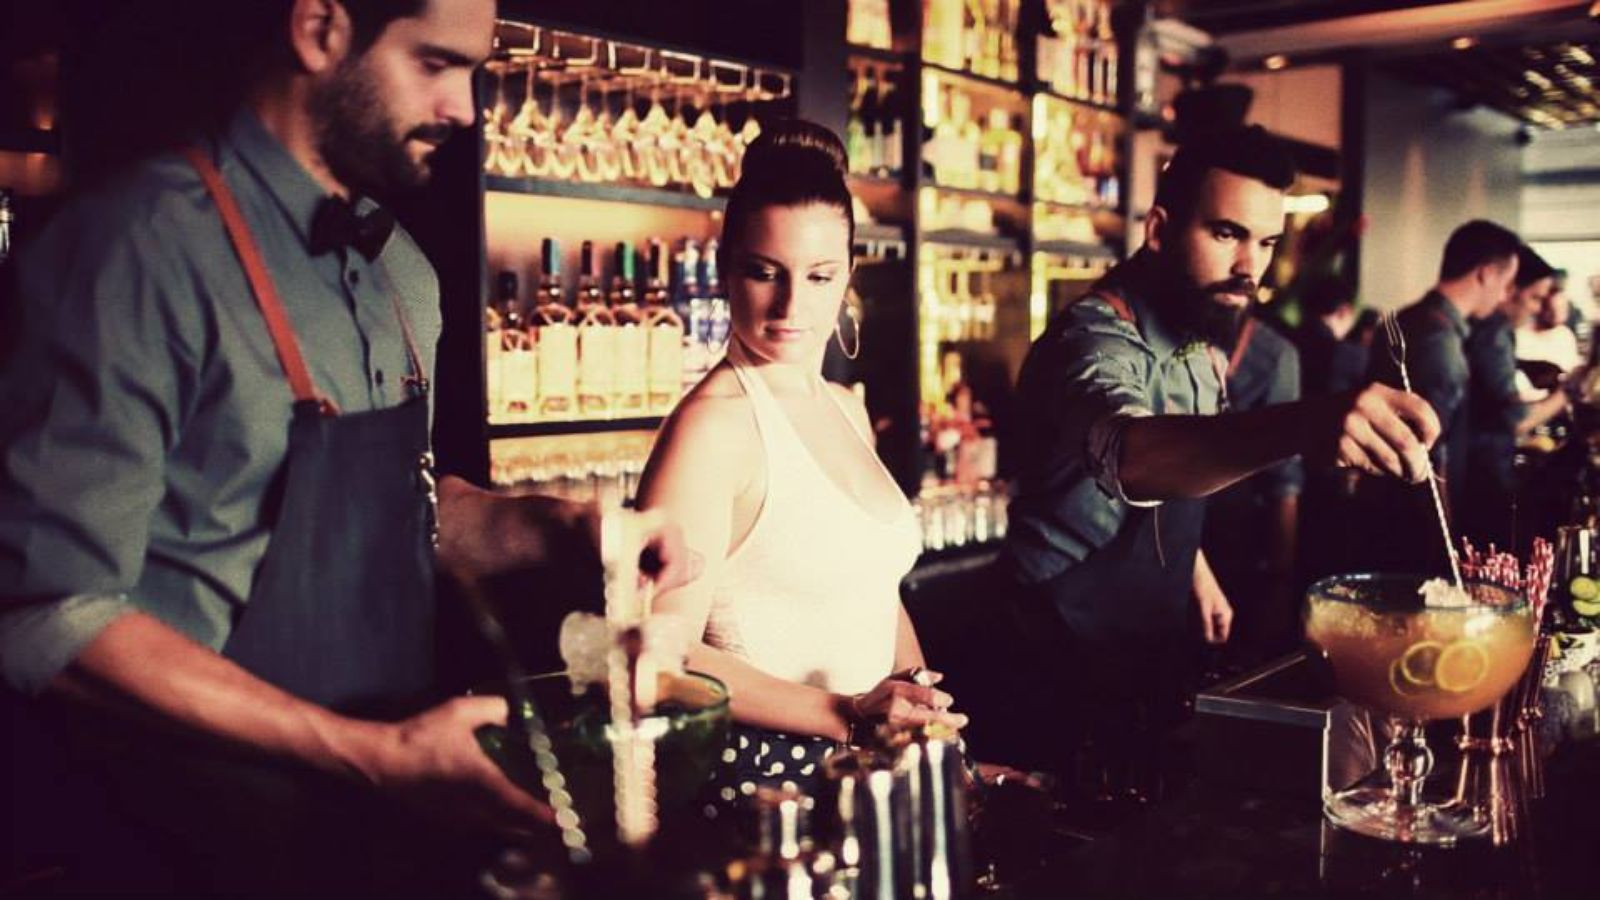 Top 60 Bartender Blogs & Websites for Bartenders in